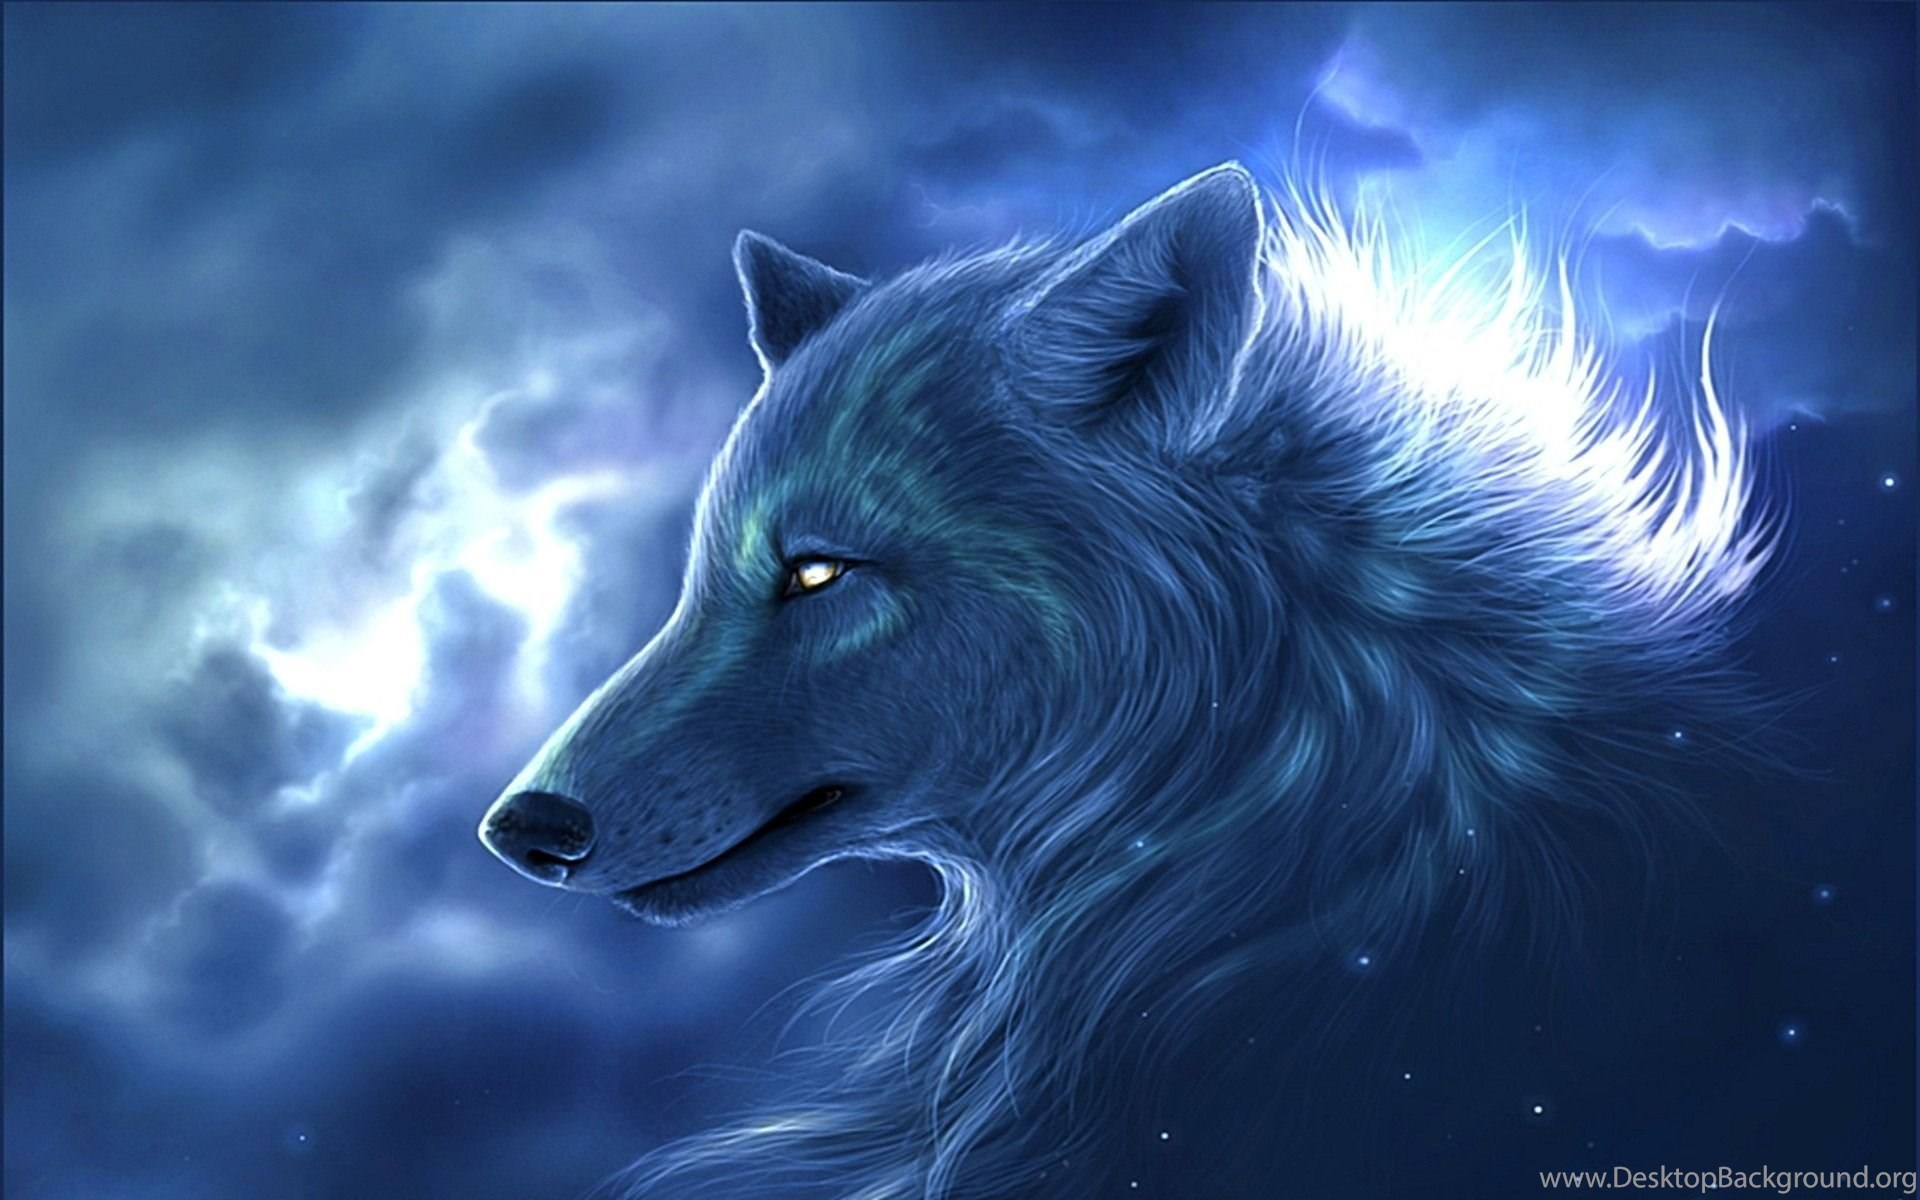 Cool Wolf Desktop Backgrounds Wallpaper Jpg Desktop Background